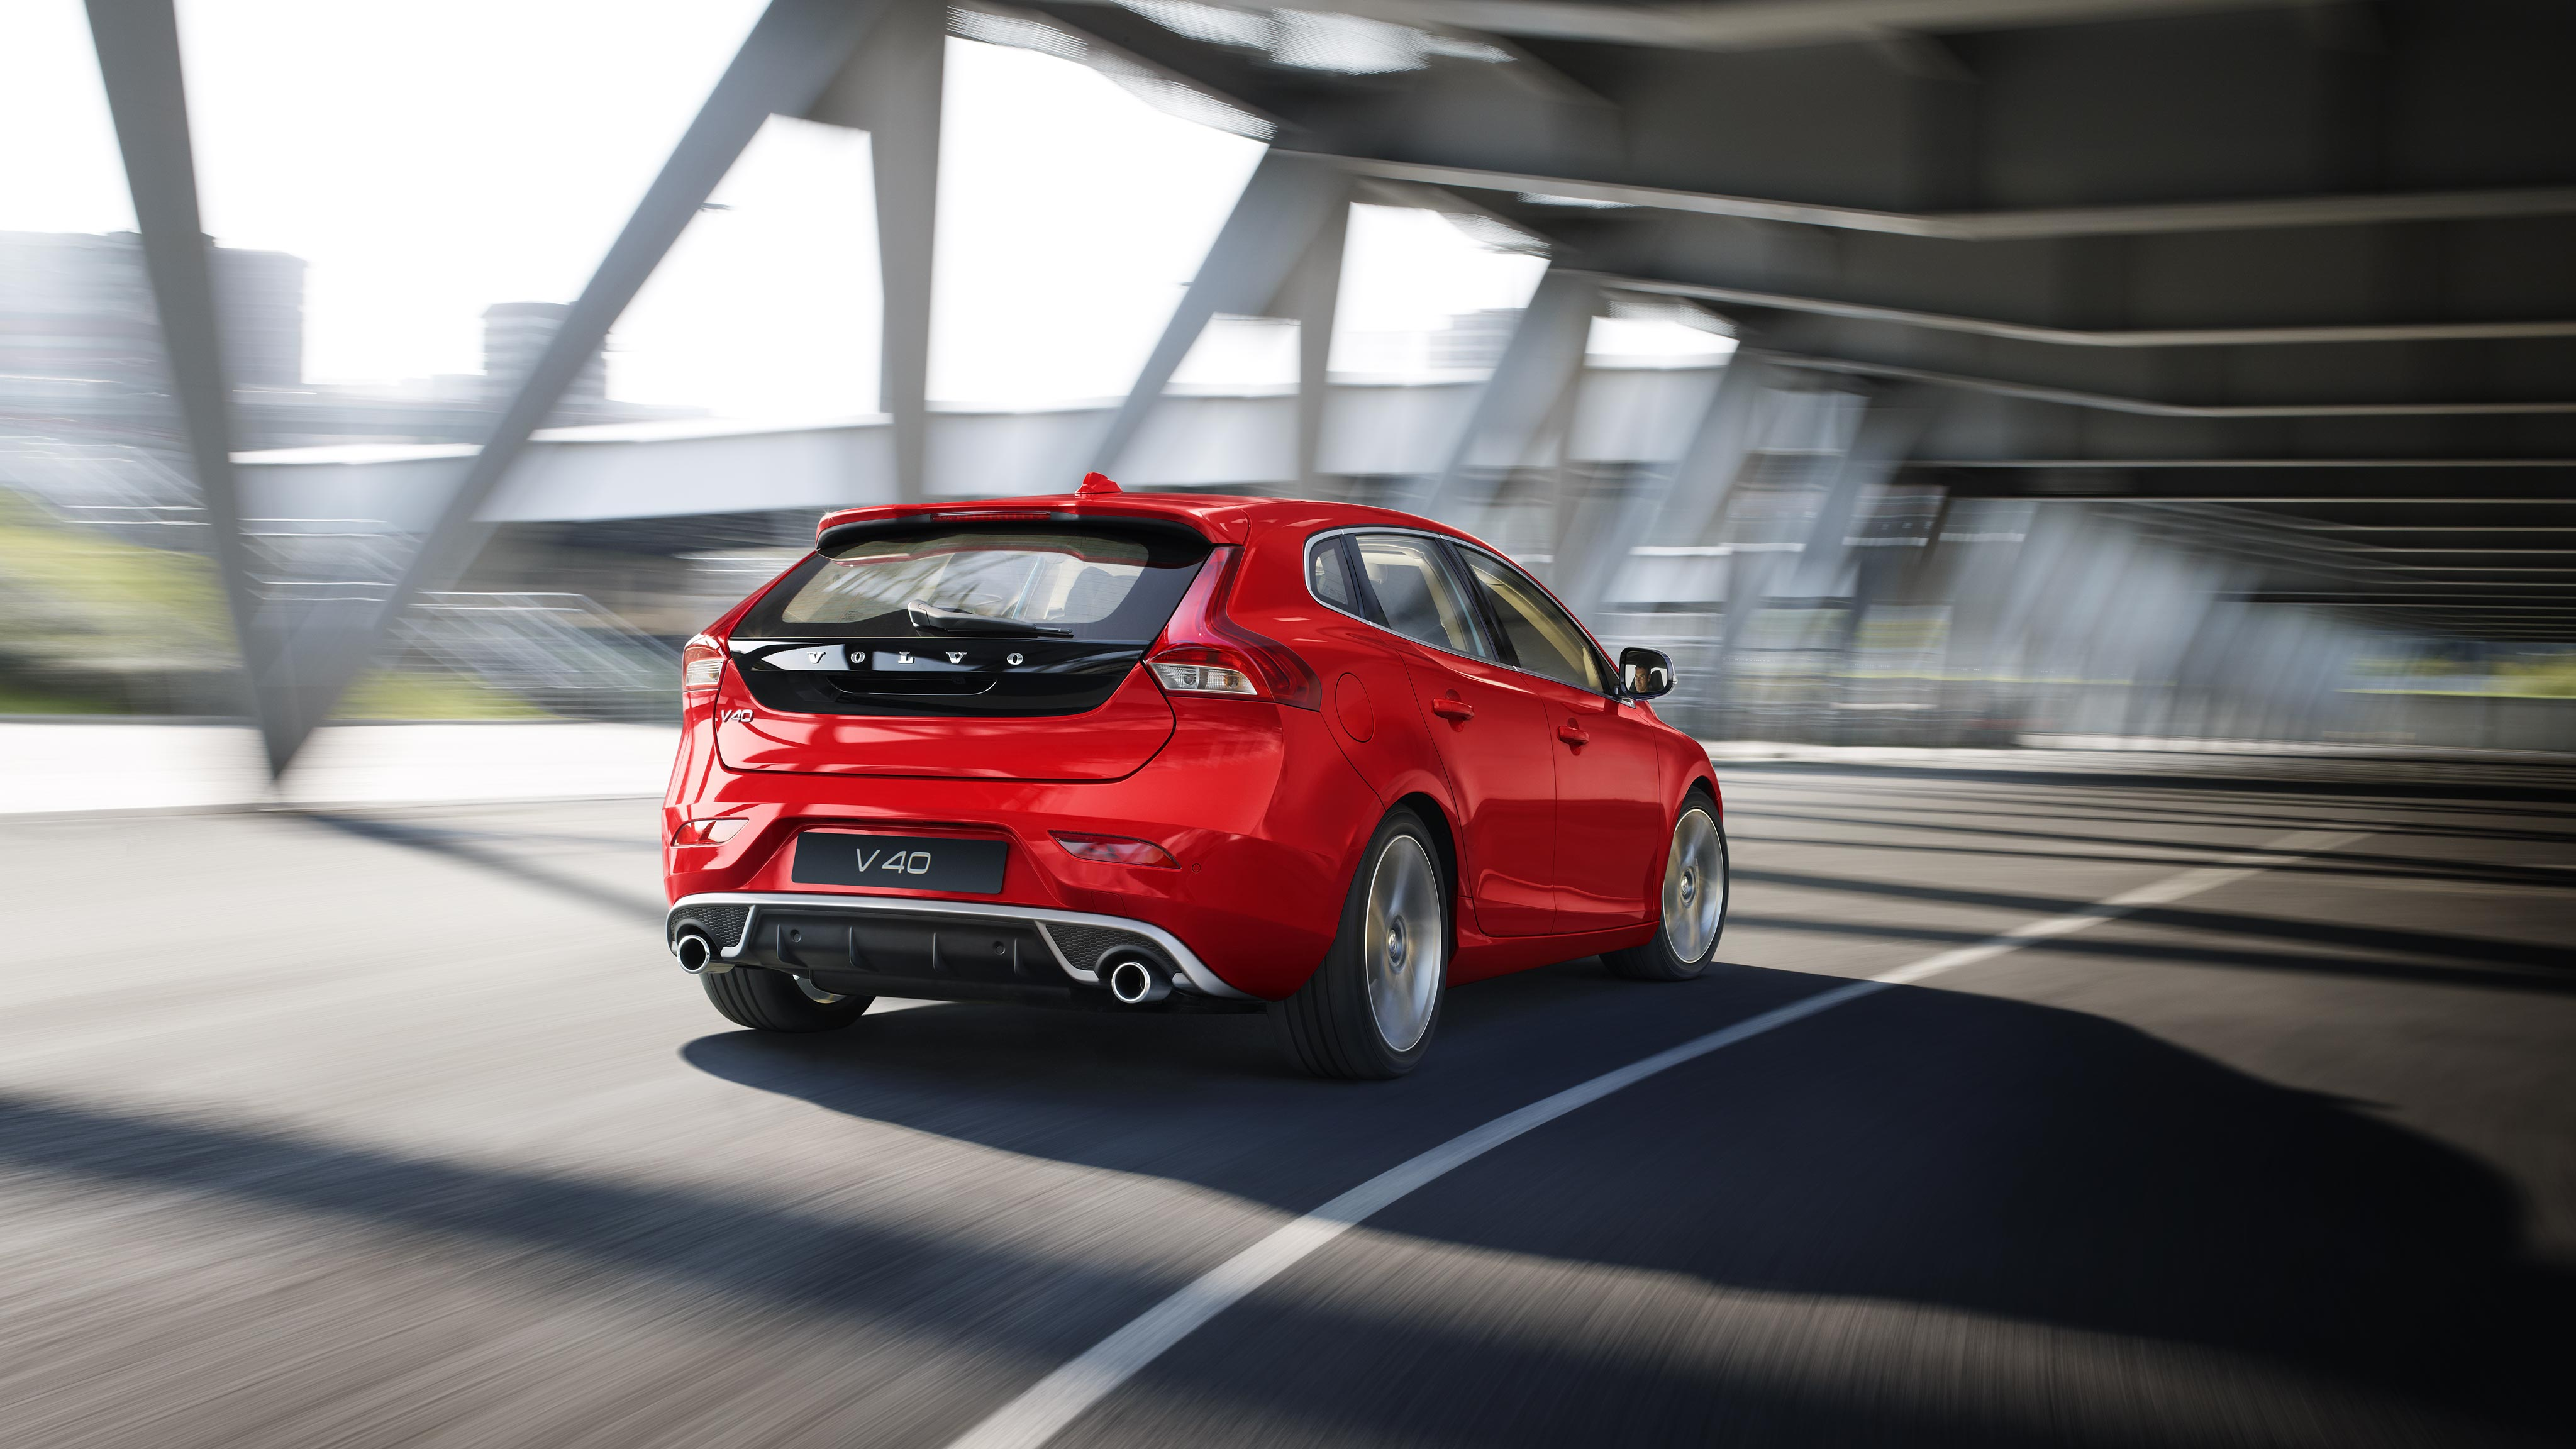 Volvo V40 driving on bridge